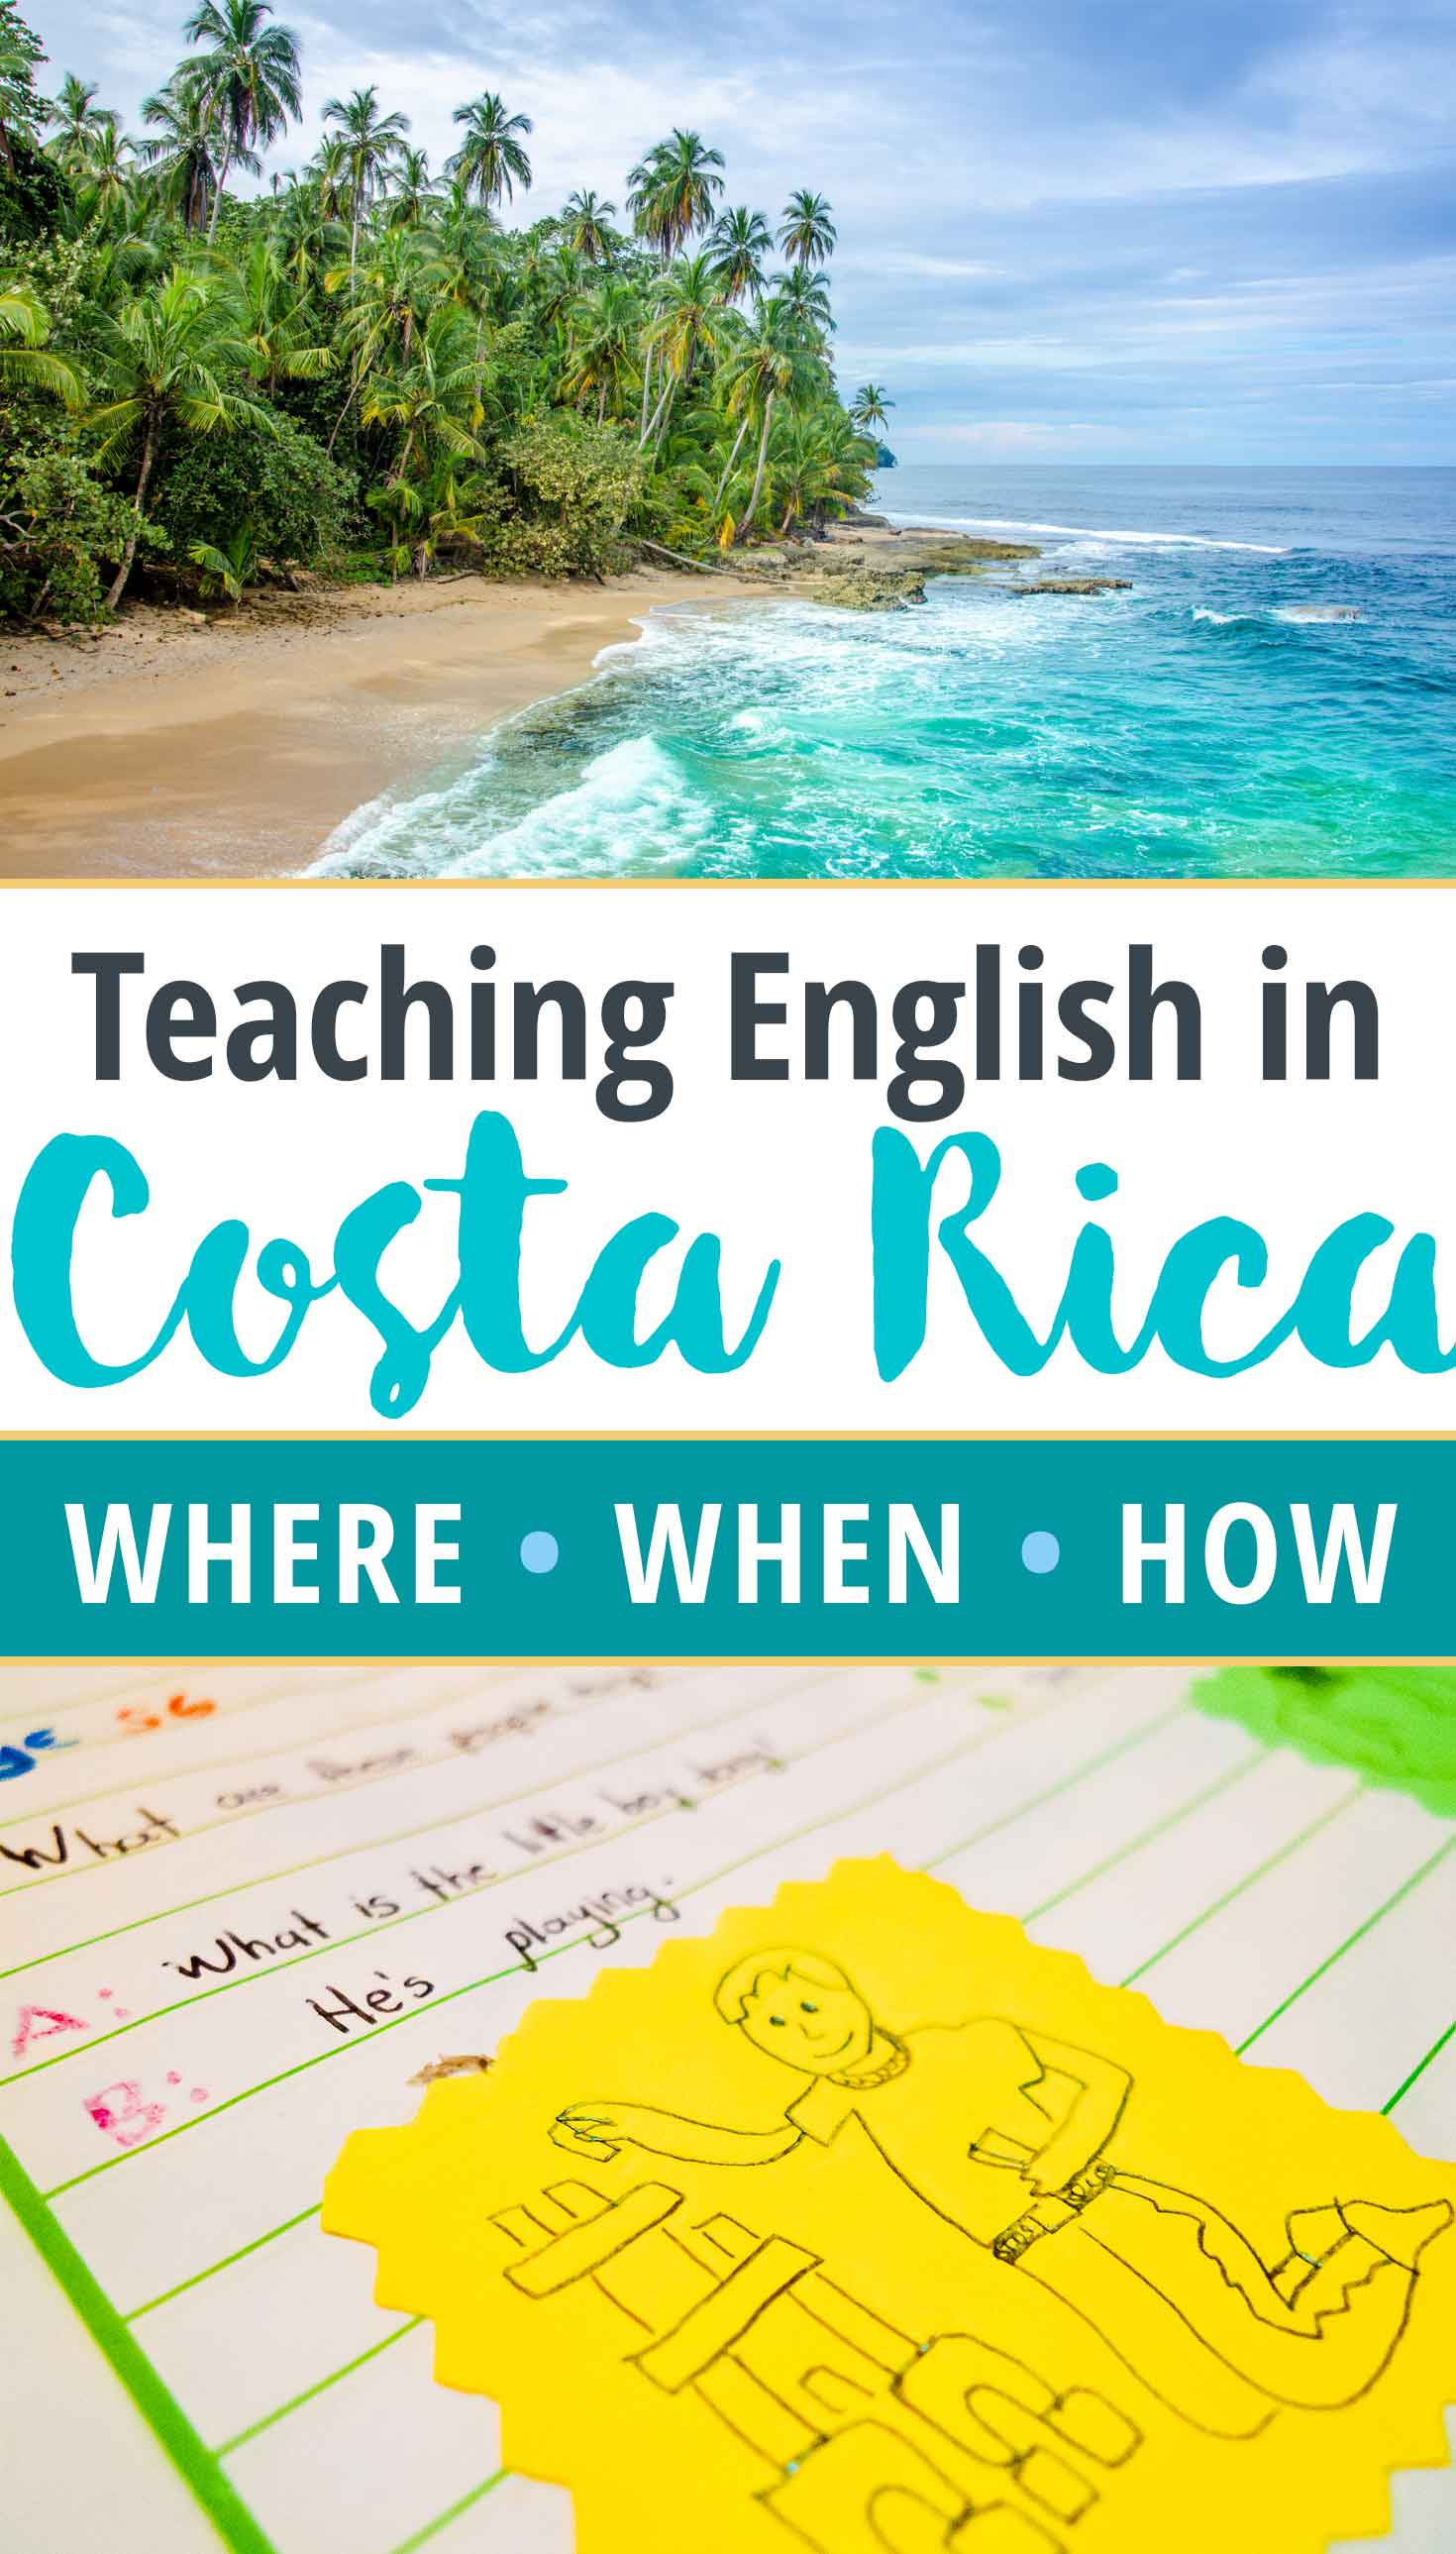 Teaching English in Costa Rica FAQ: Where, When, How